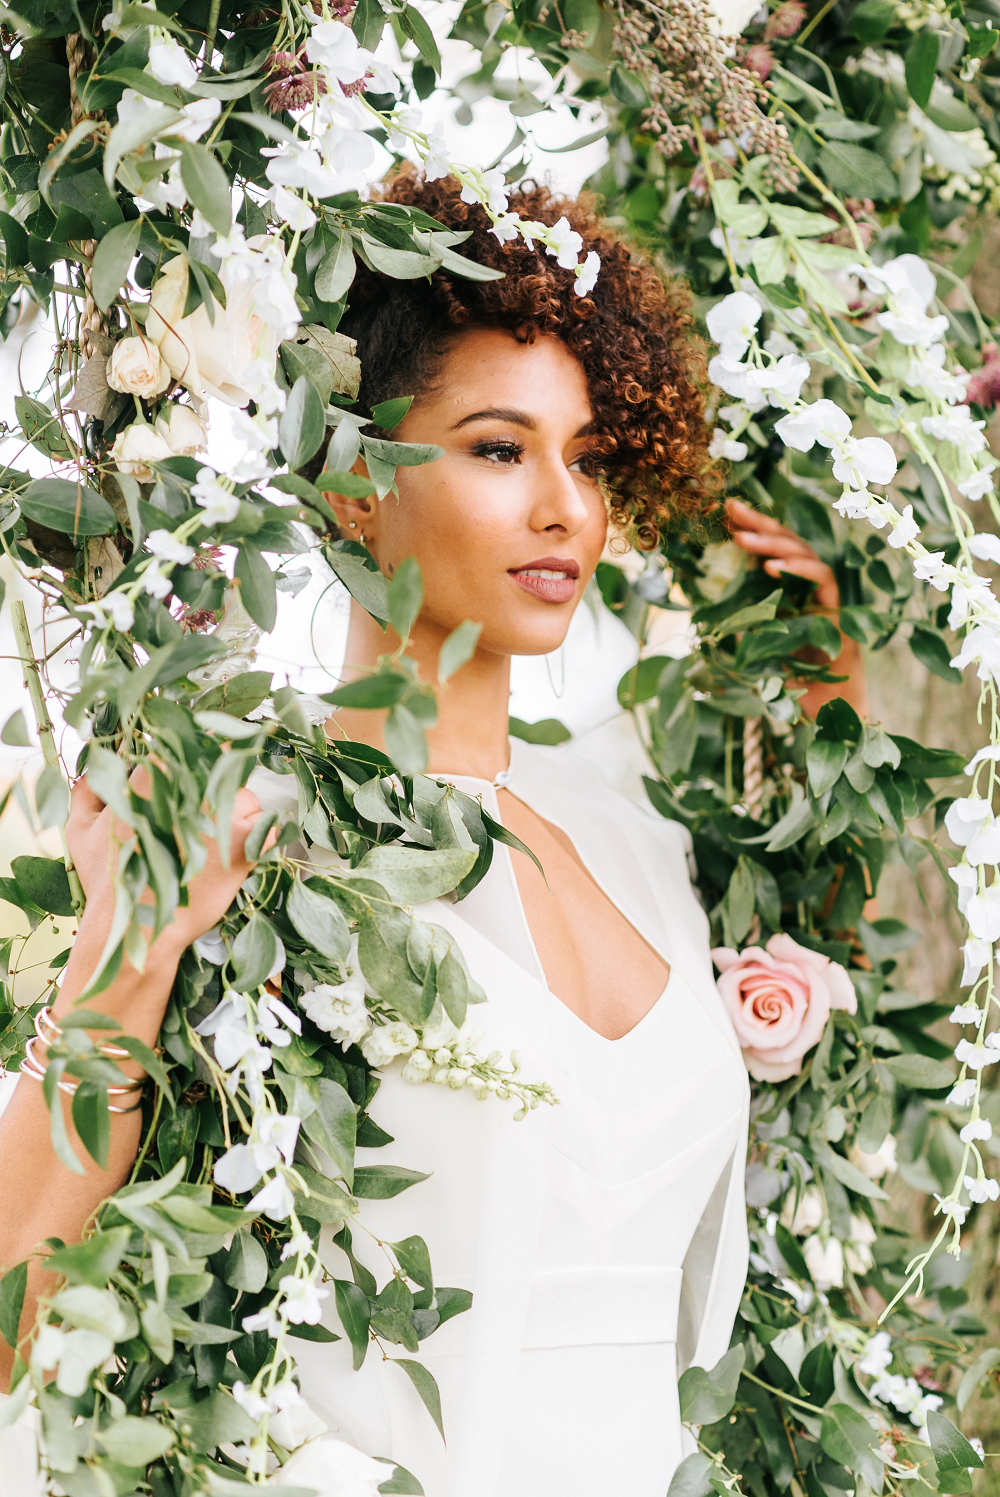 Lush Greenery Wedding Inspired Styled Shoot at Cornman Farms Bride with Flowers